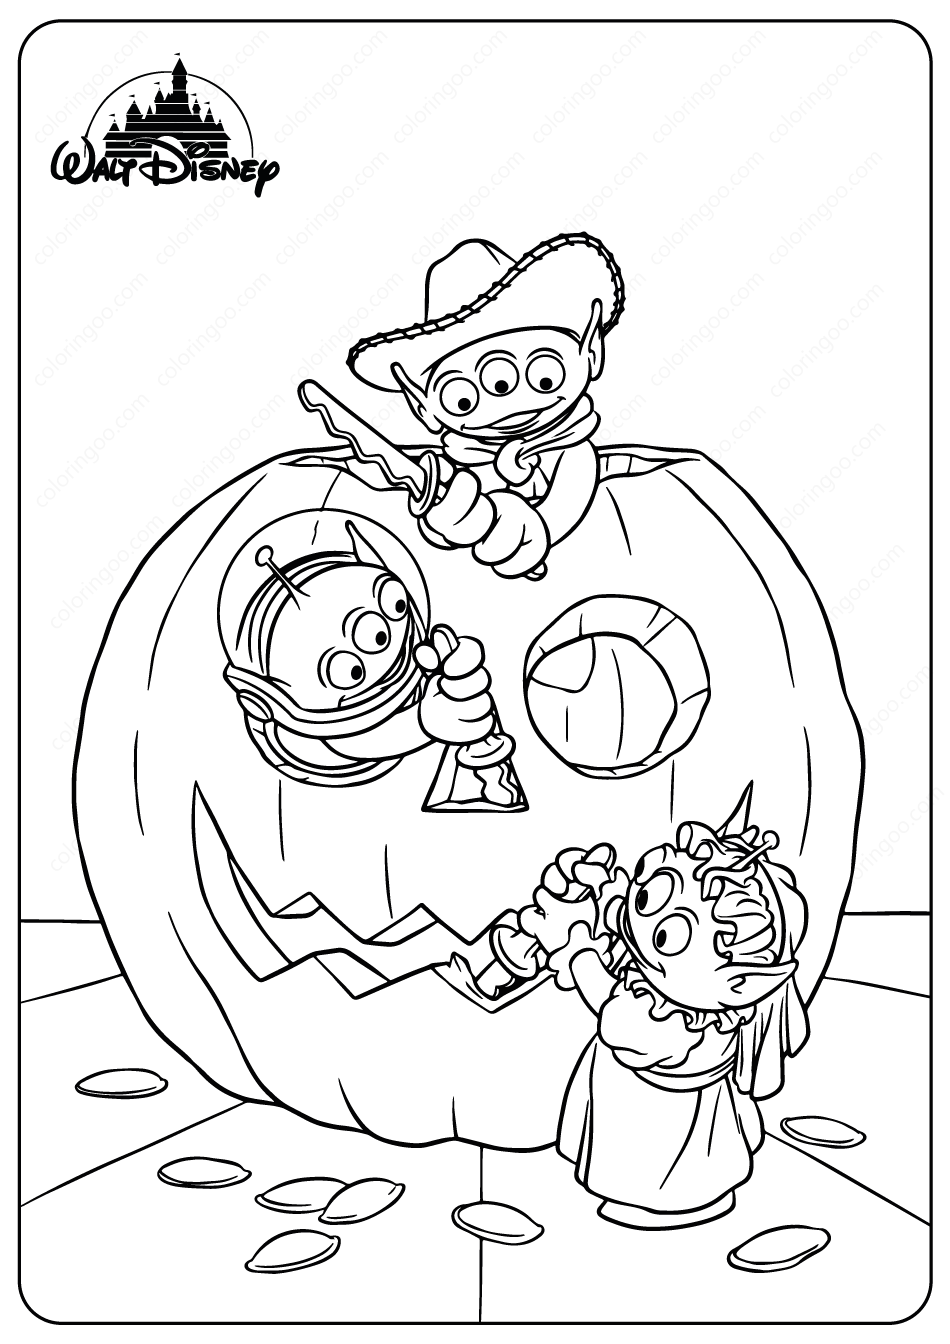 Aliens Halloween Coloring Pages disney aliens toystory